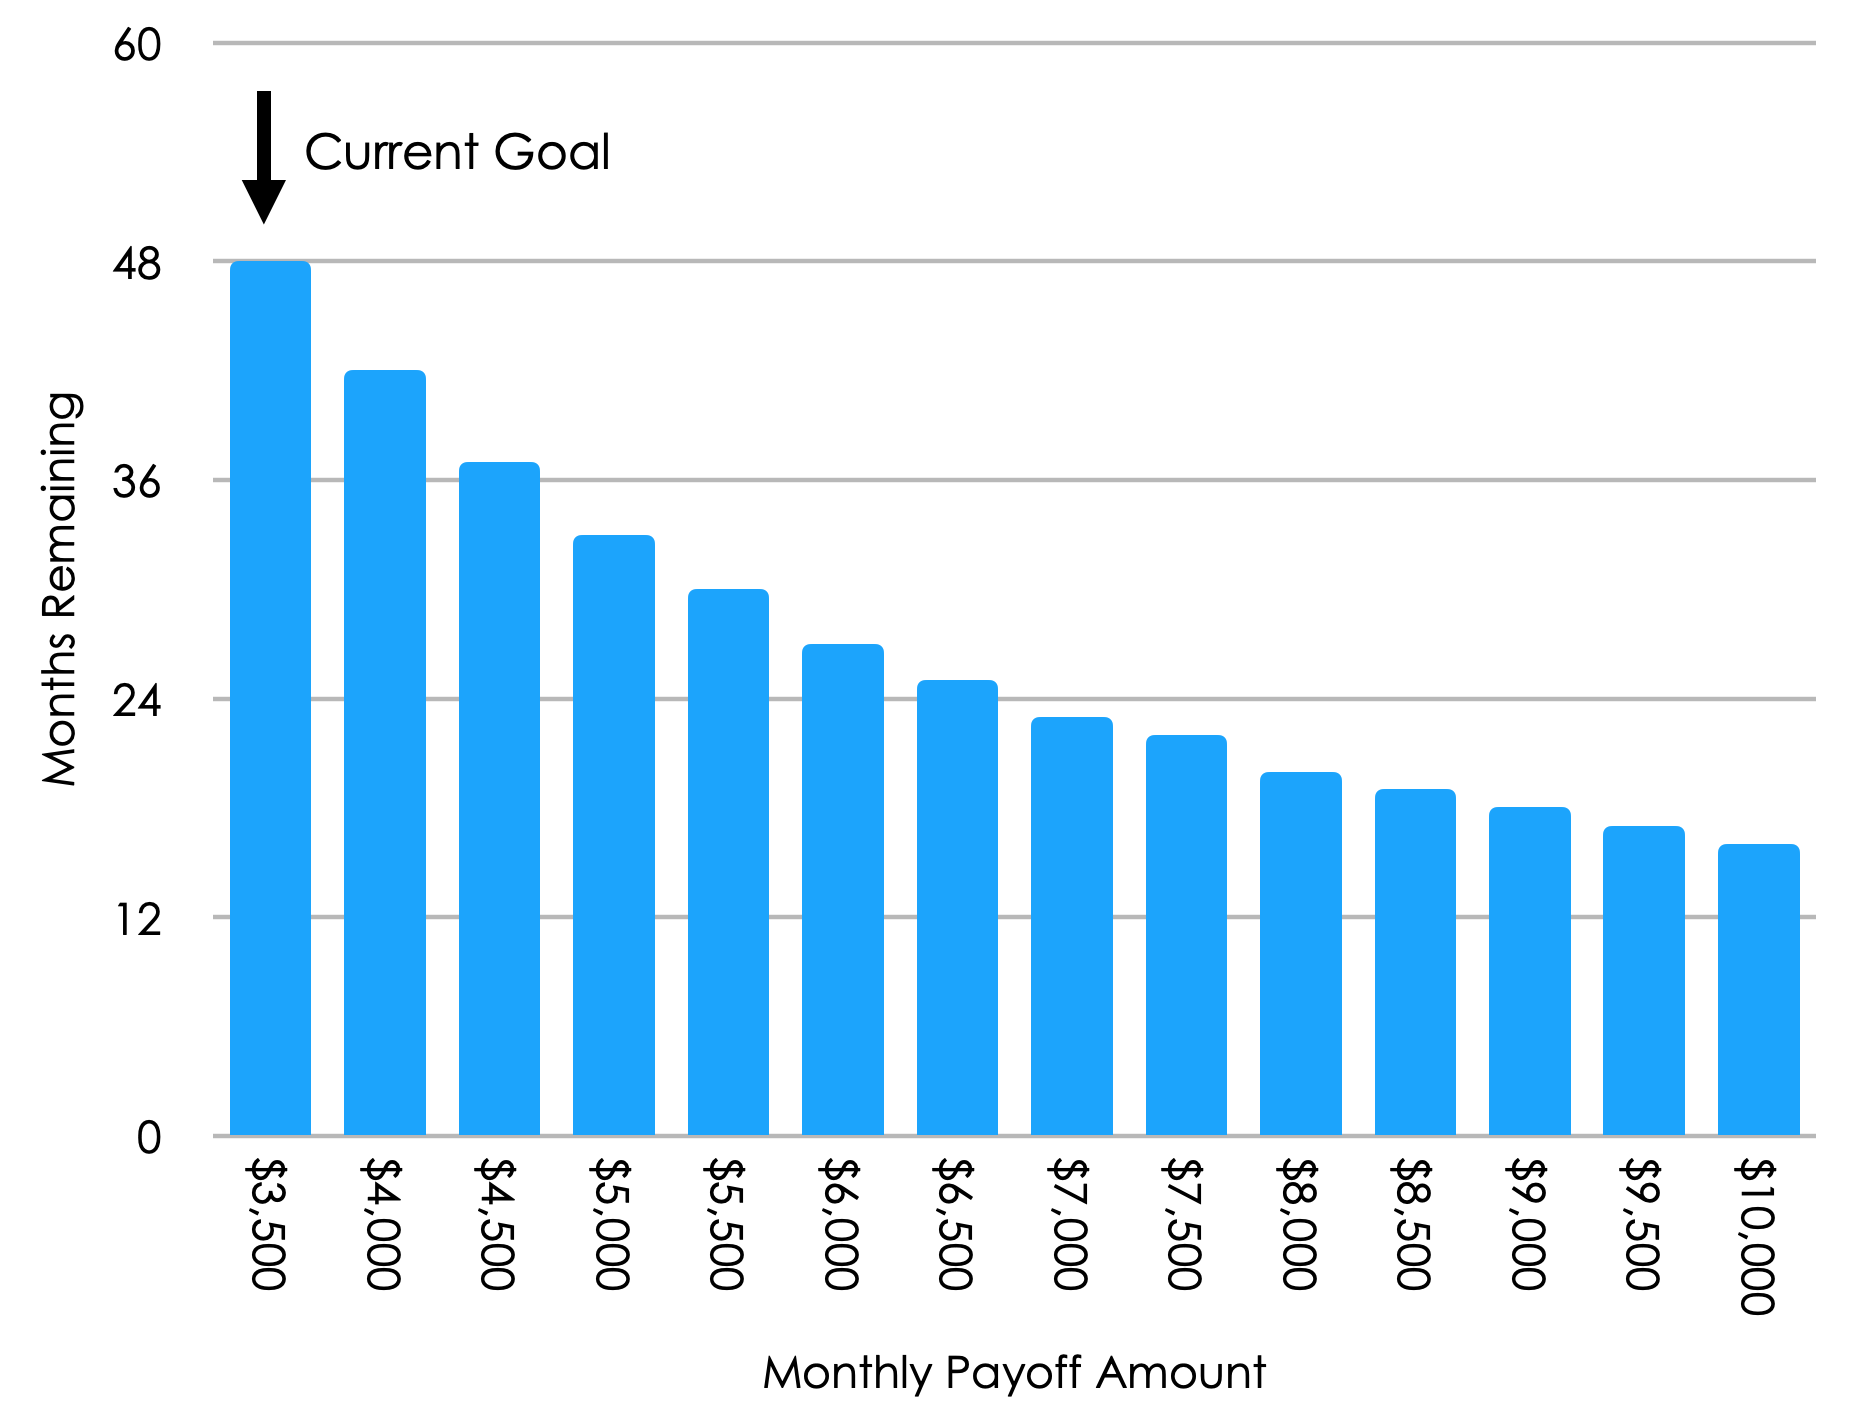 June 2020 Monthly Payoff